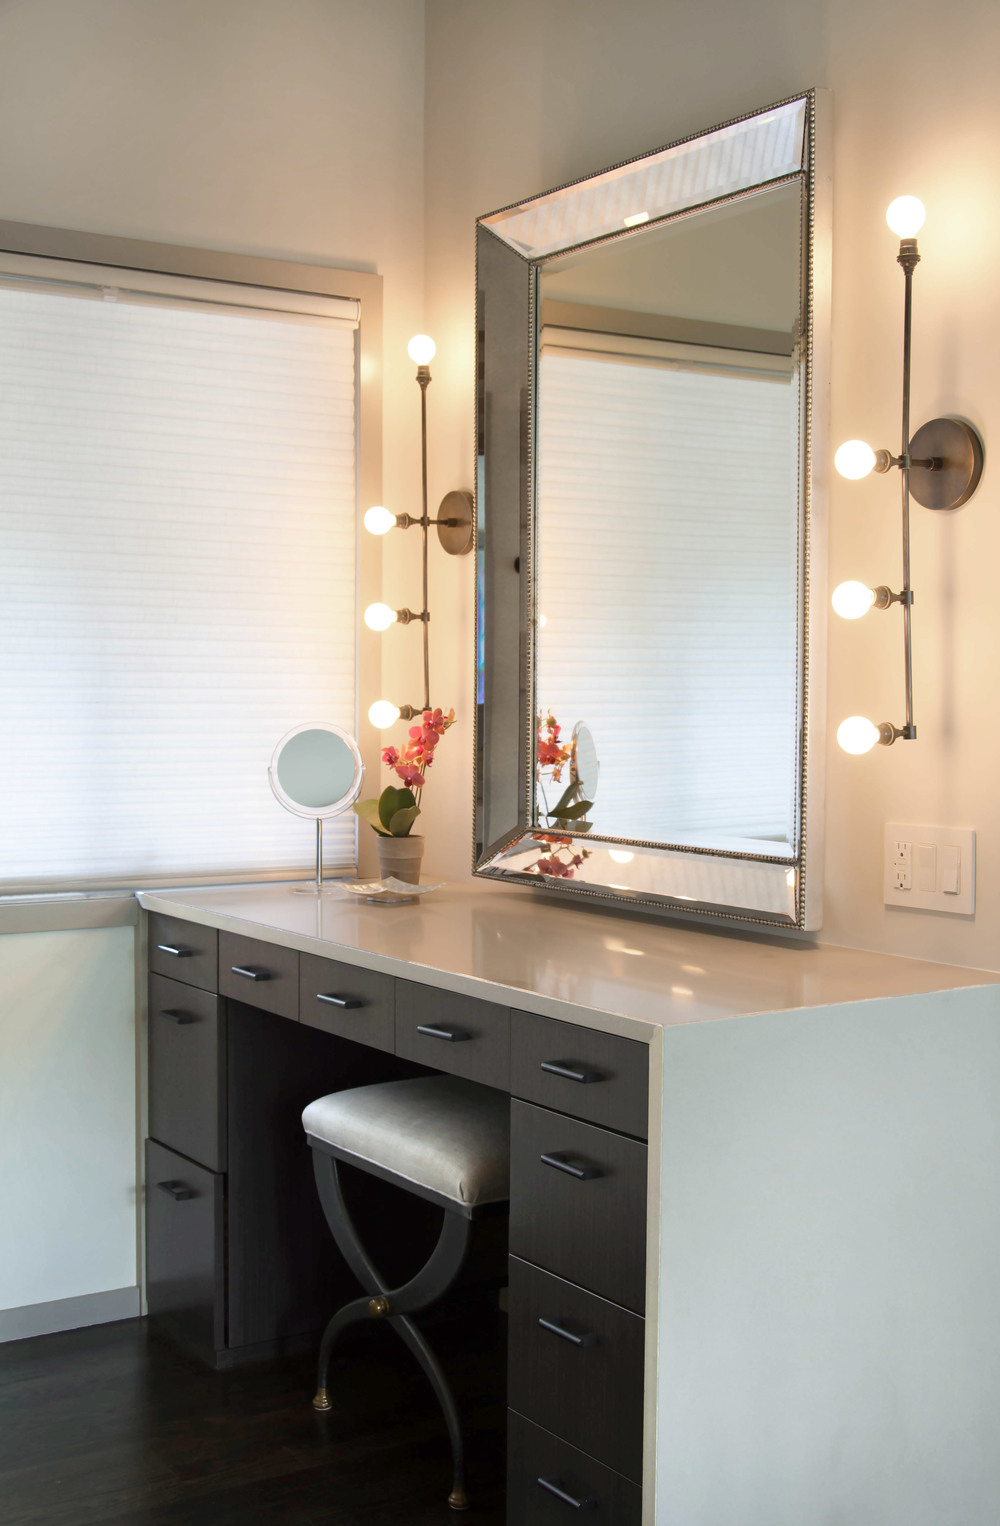 MasterBathroom4-GrayscaleDesign.jpg